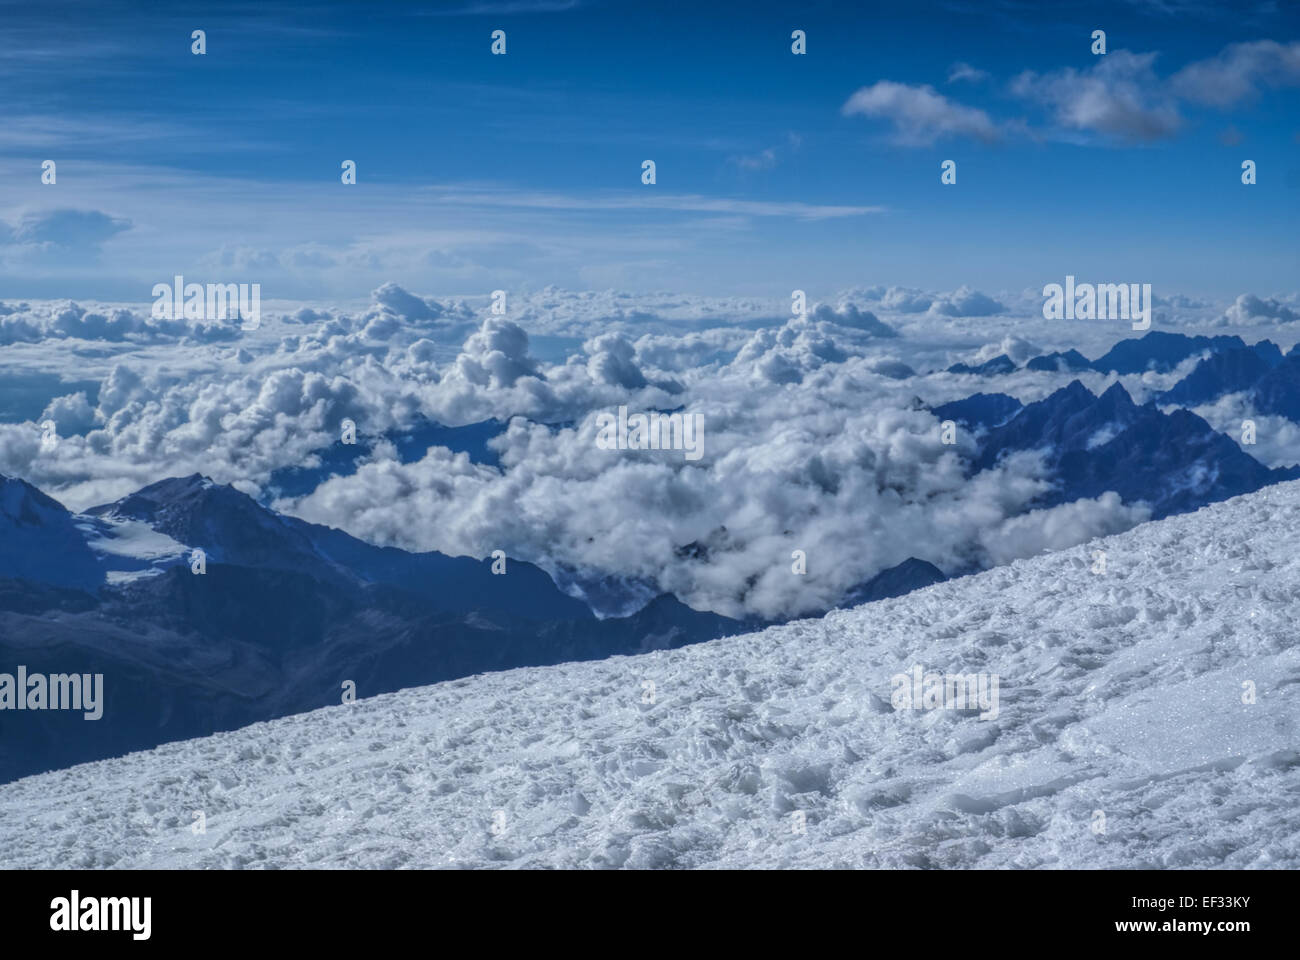 Breathtaking view from near top of Huayna Potosi mountain in Bolivia - Stock Image